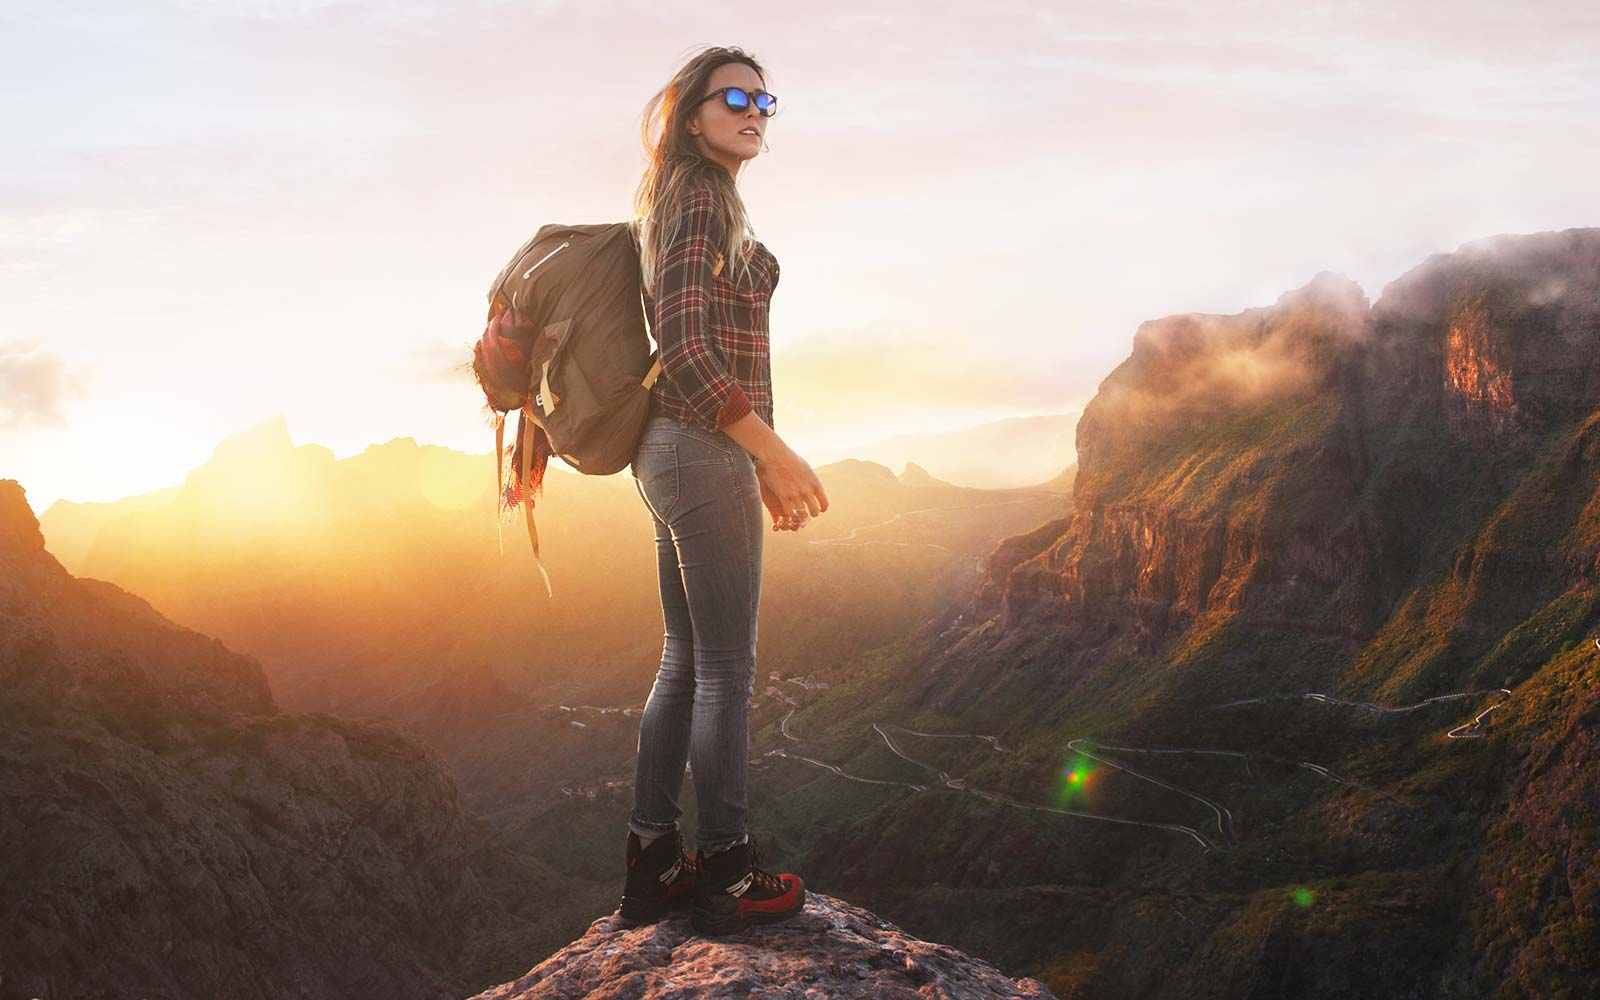 How Instagram Is Skewing the Way We Talk About Women in the Outdoors